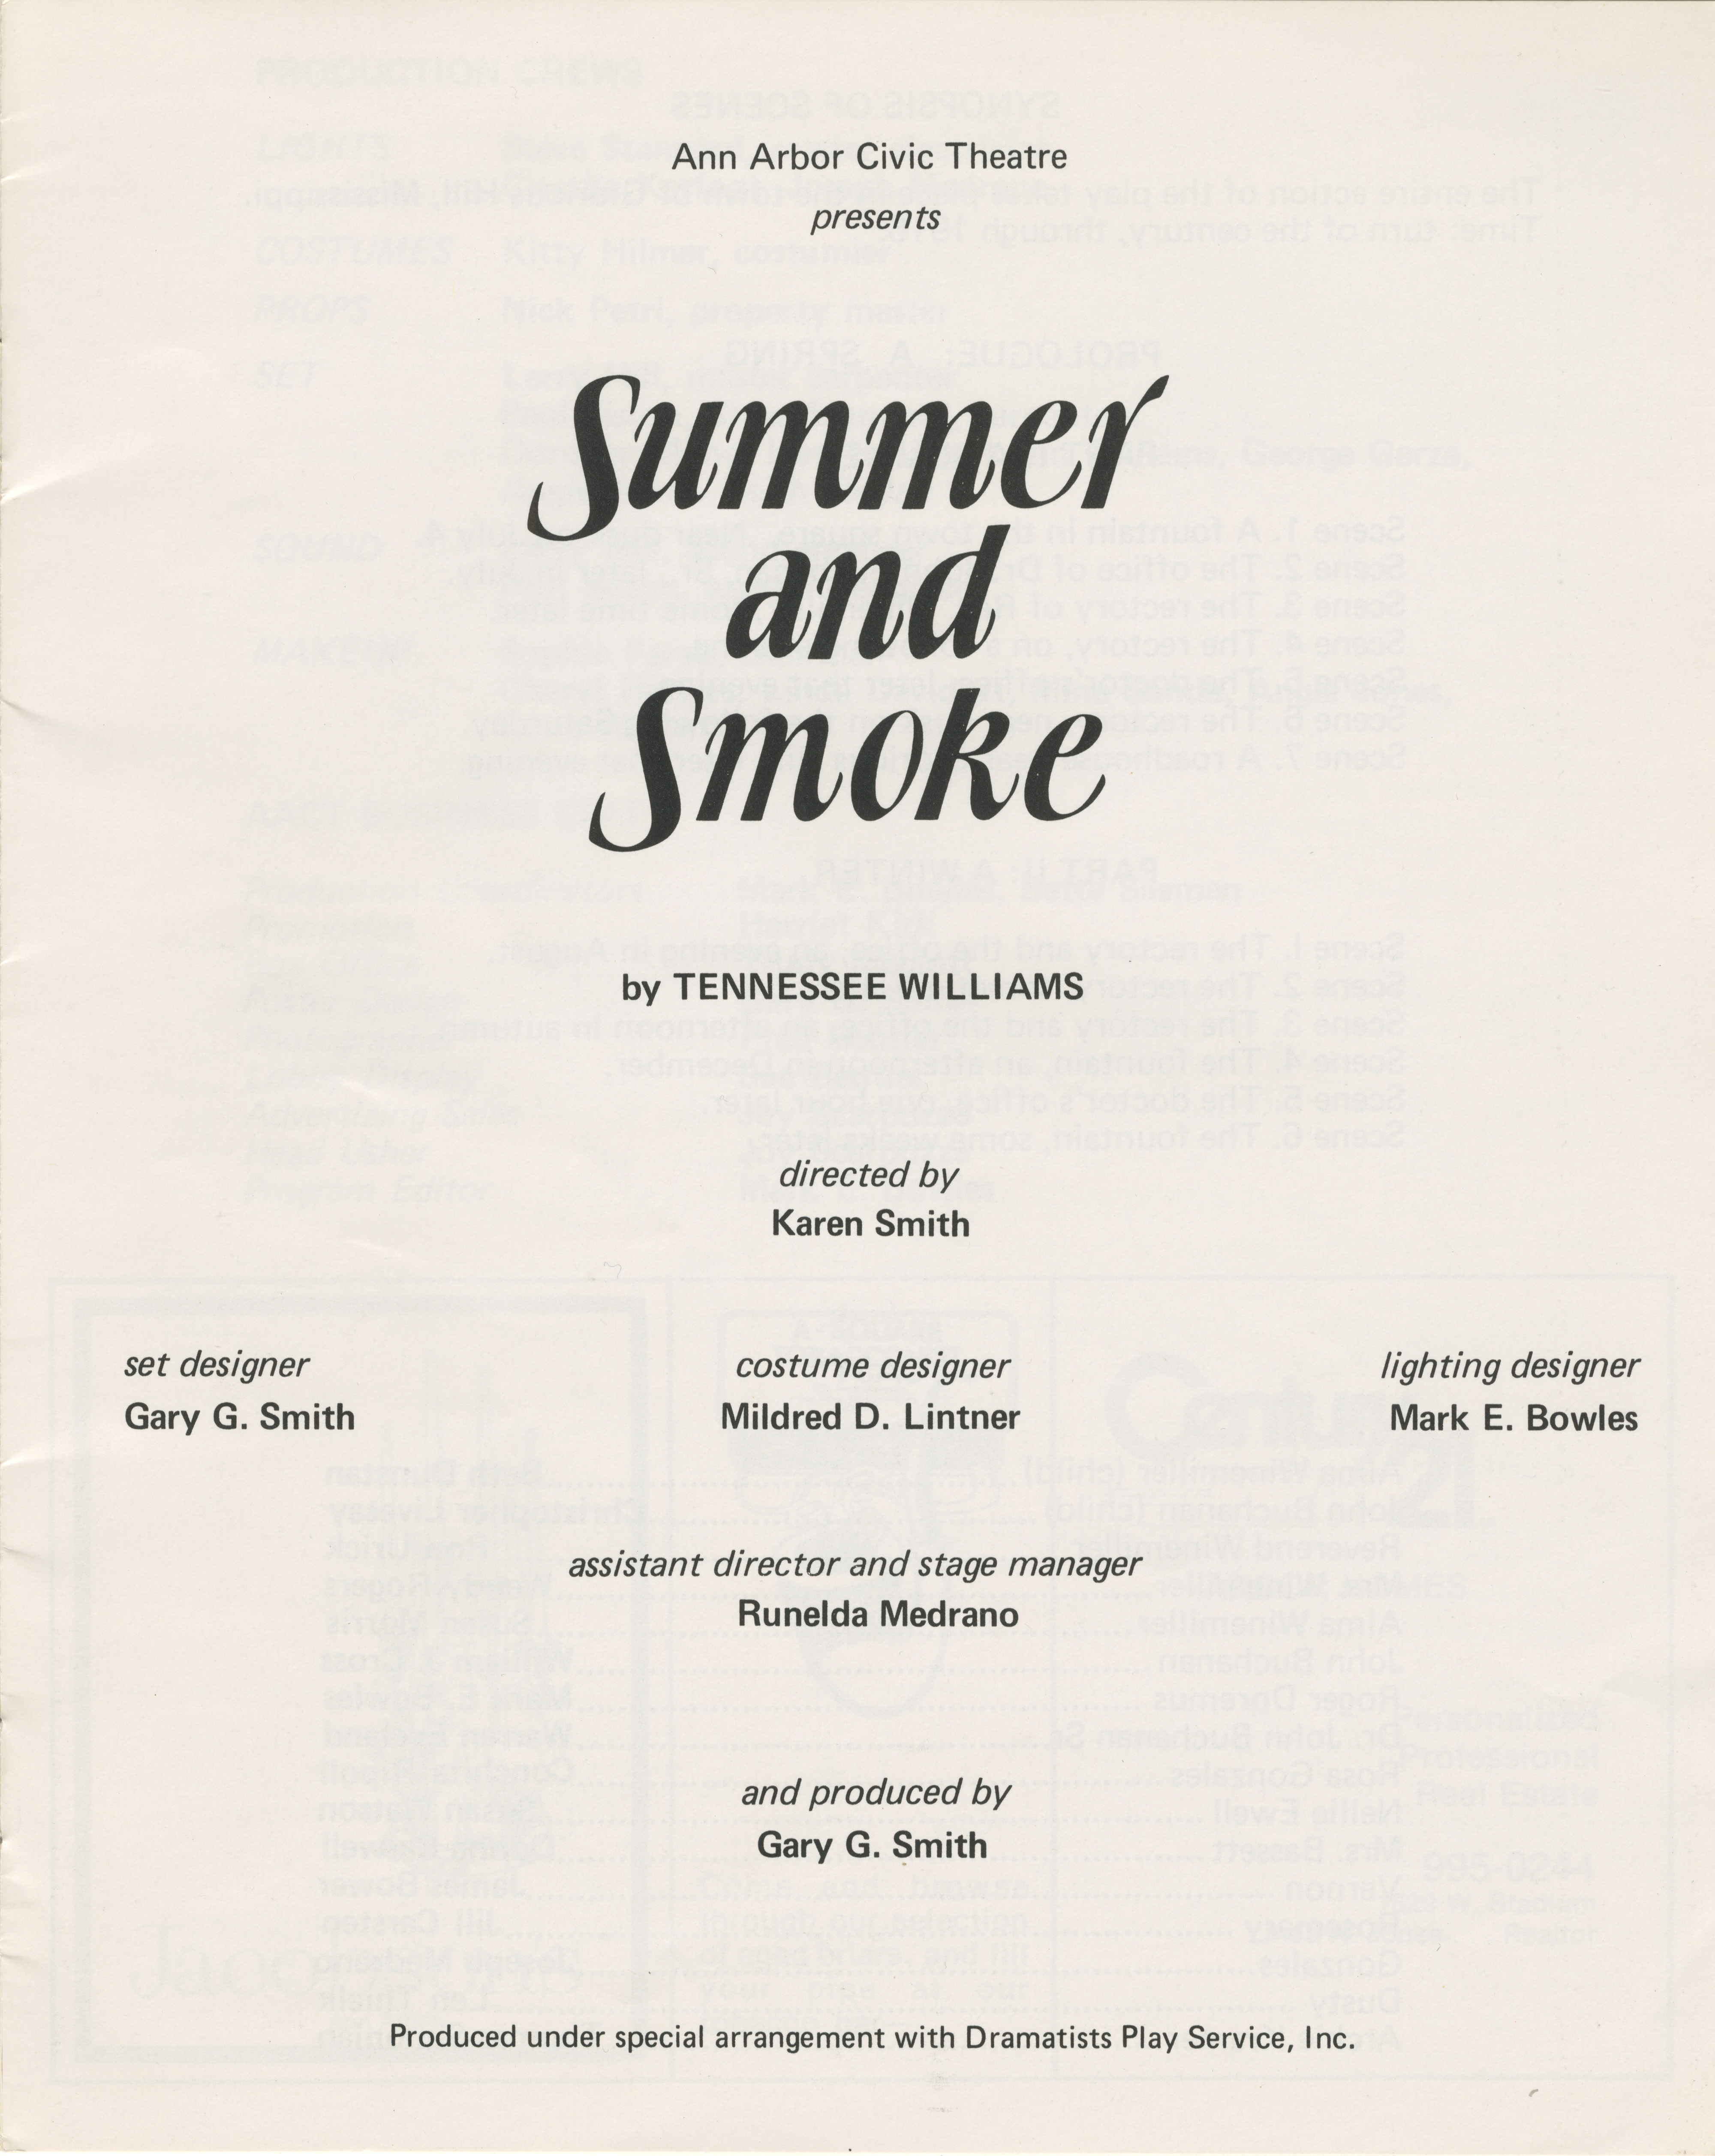 Ann Arbor Civic Theatre Program: Summer And Smoke, October 20, 1976 image